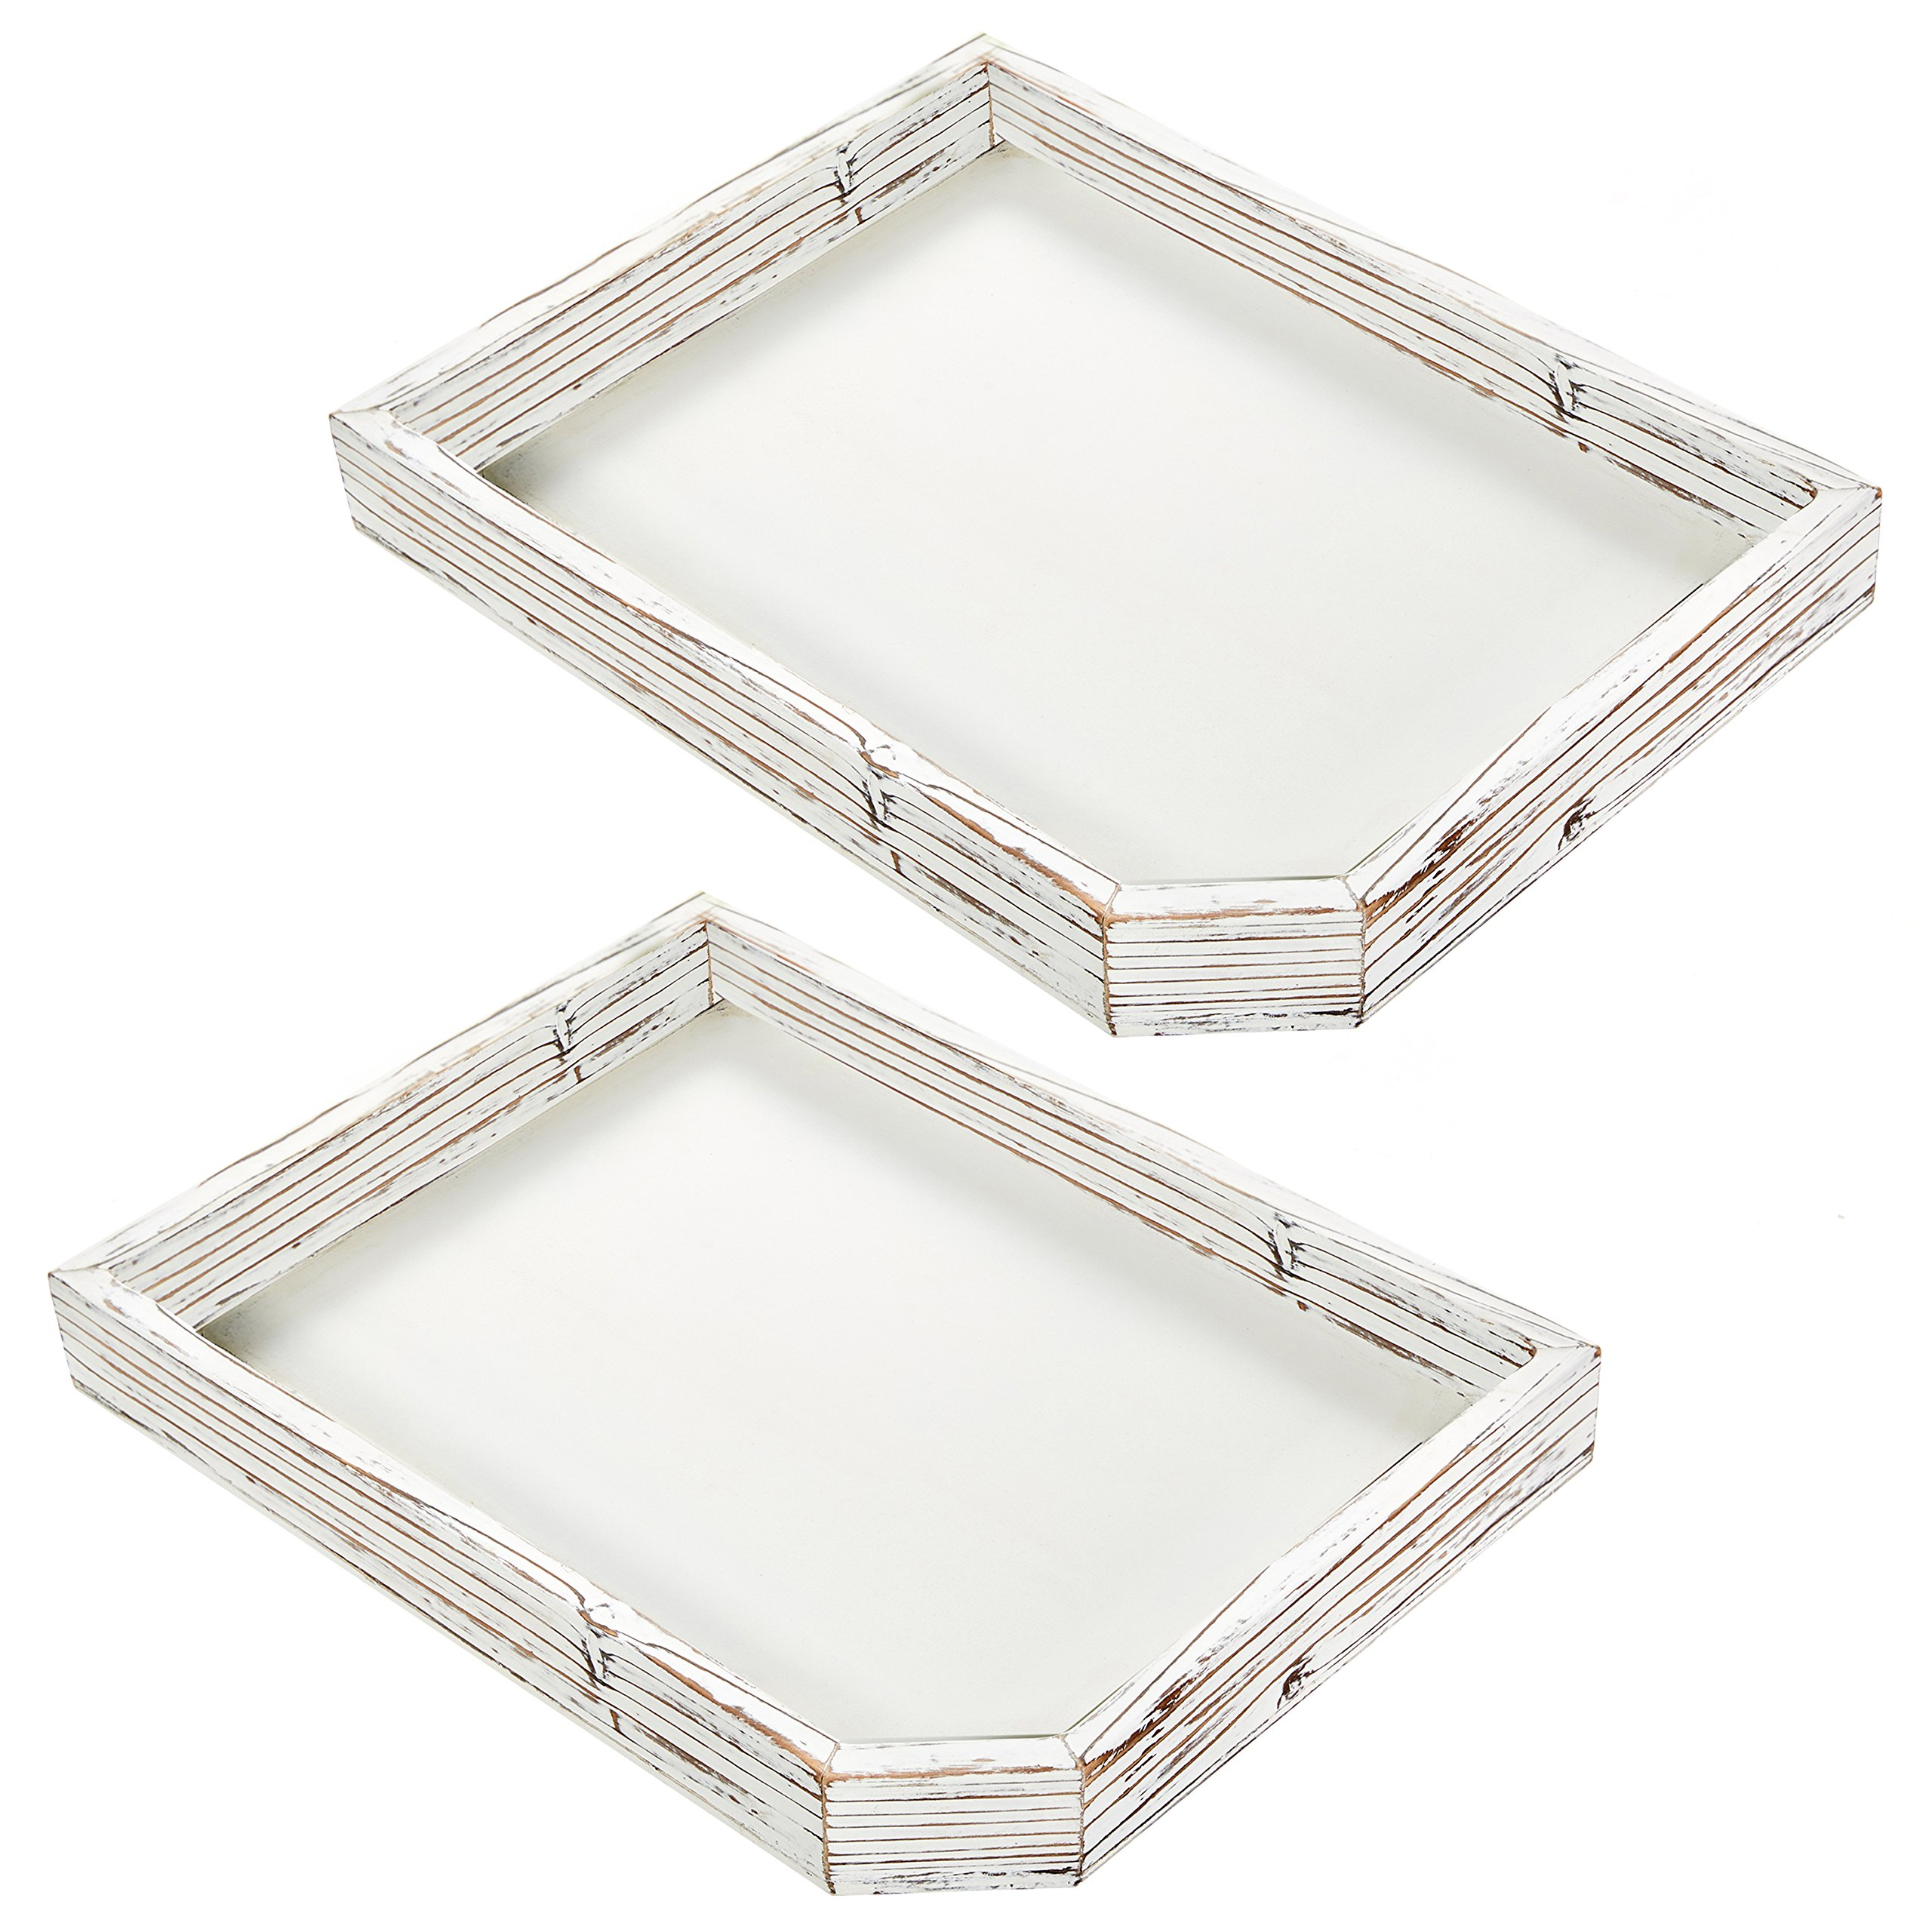 Set of 2 Distressed Whitewashed Wood Serving Trays, Farmhouse Style Coffee Table Display Tray by MyGift